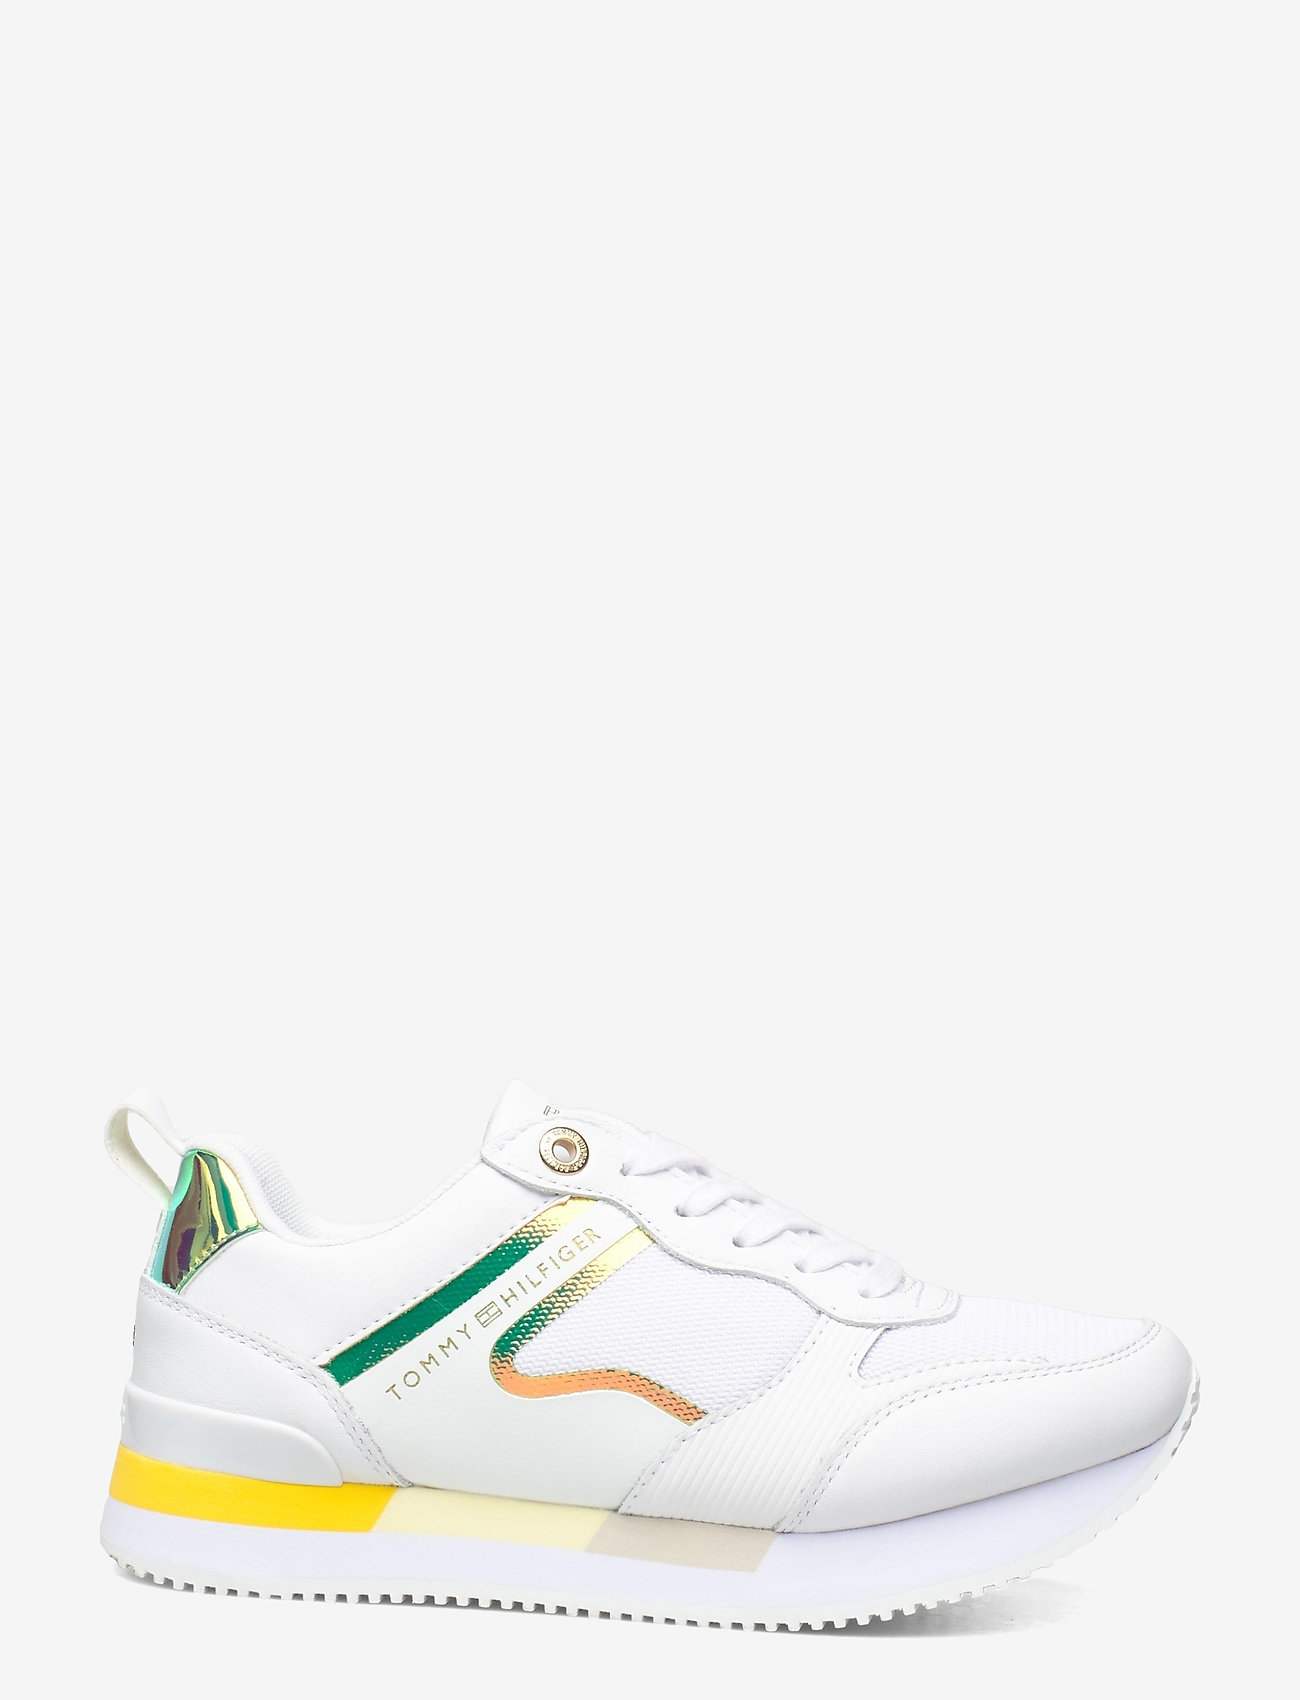 Tommy Hilfiger - FEMININE ACTIVE CITY SNEAKER - low top sneakers - vivid yellow - 1